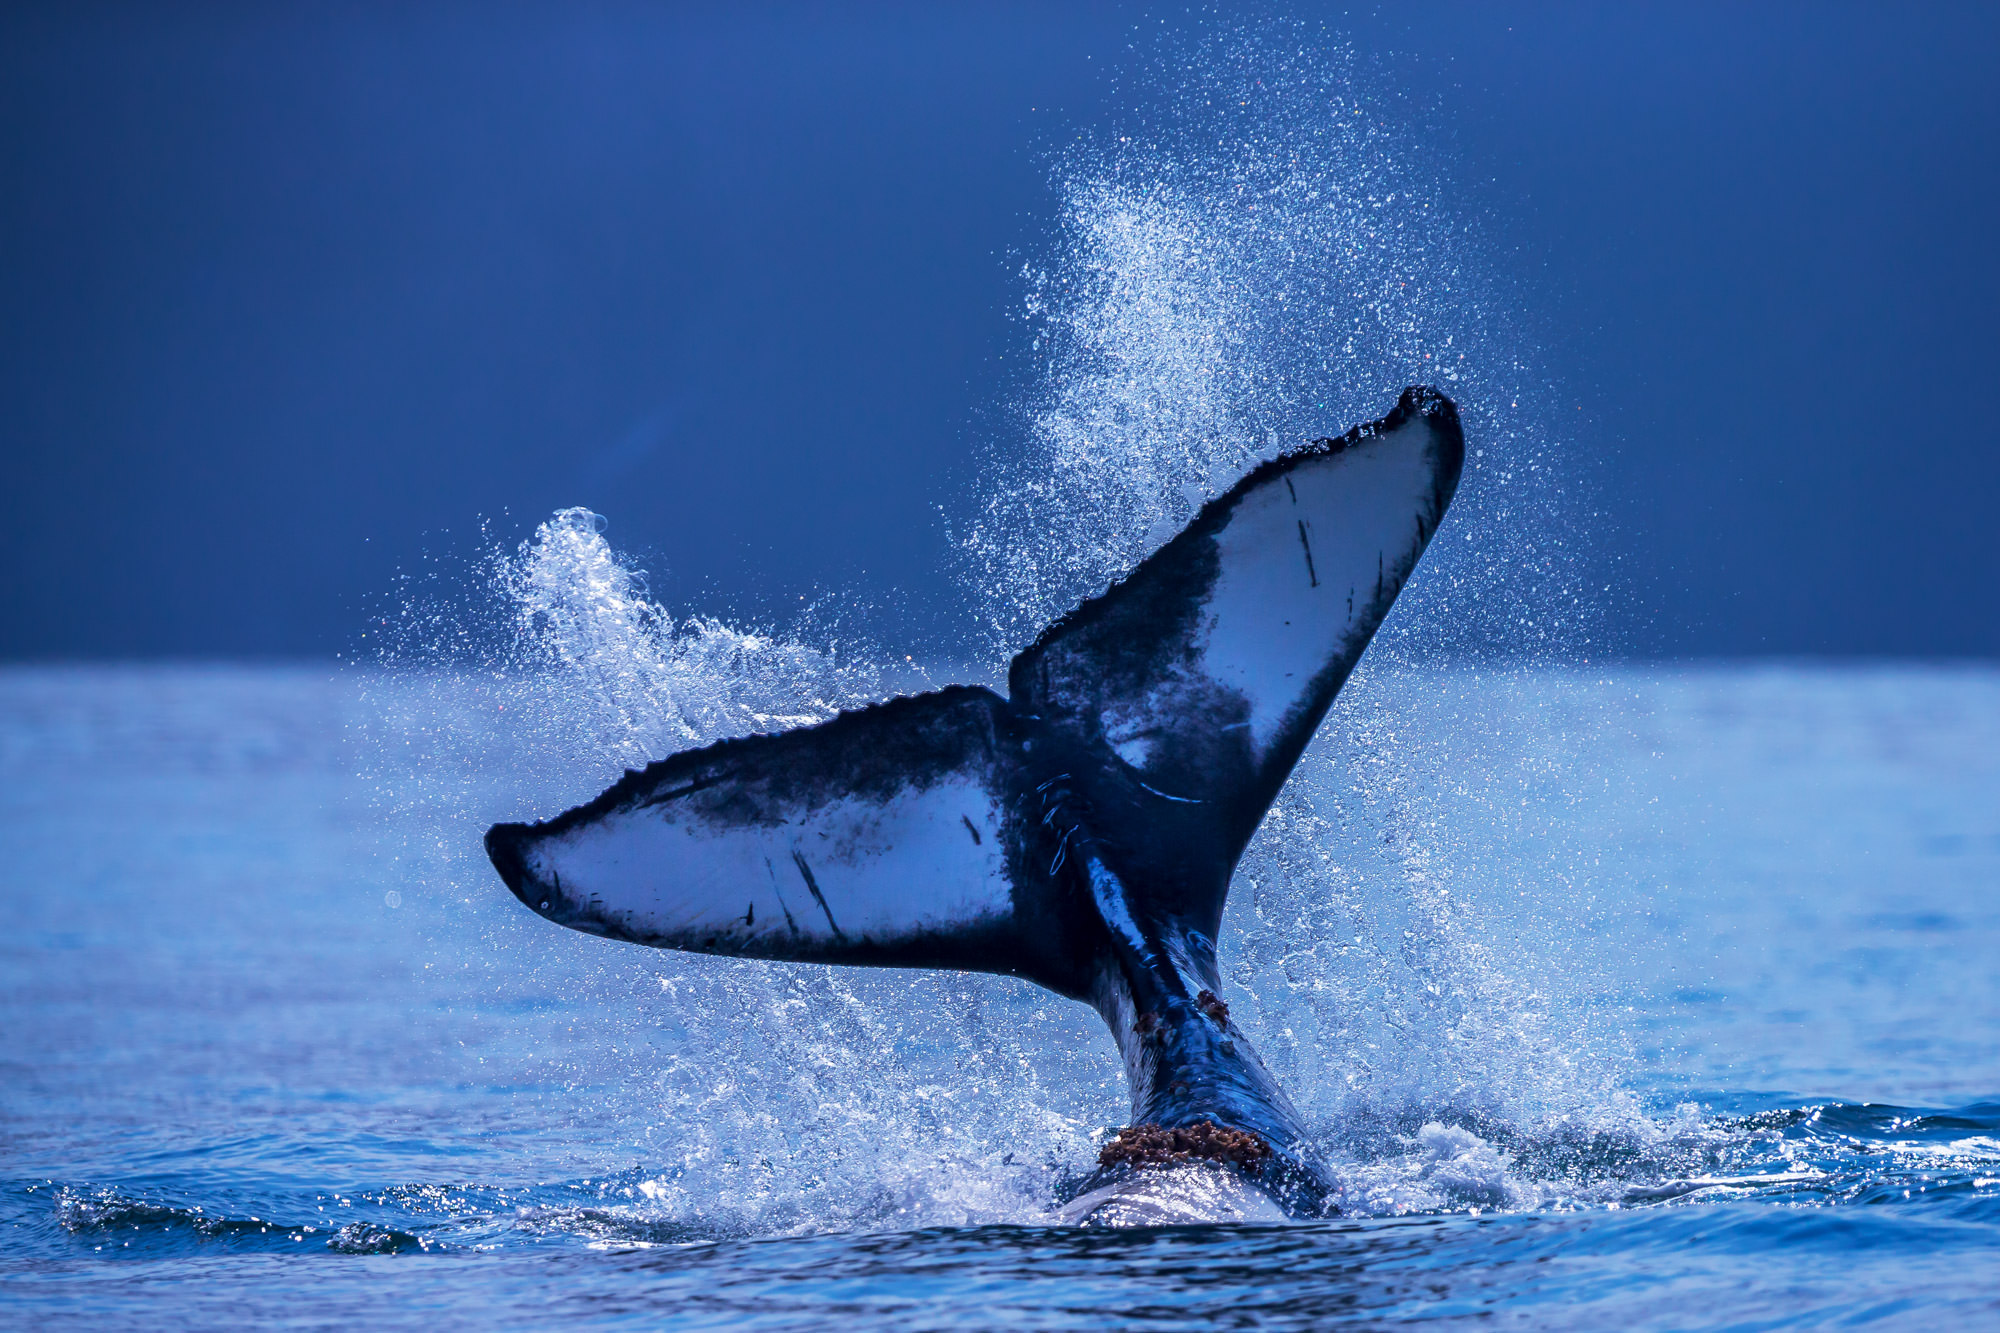 Whale, Humpback Whale, Alaska, Resurrection Bay, Tail, limited edition, photograph, fine art, wildlife, photo